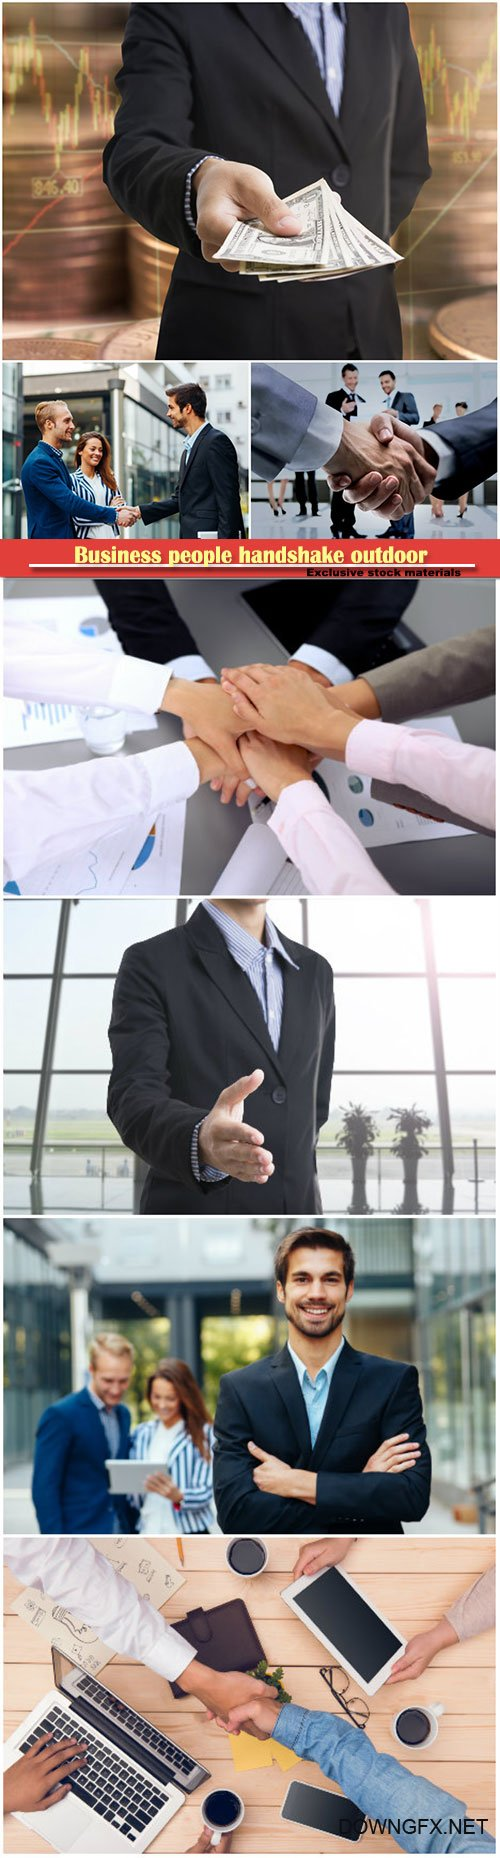 Business people handshake outdoor, bank employees